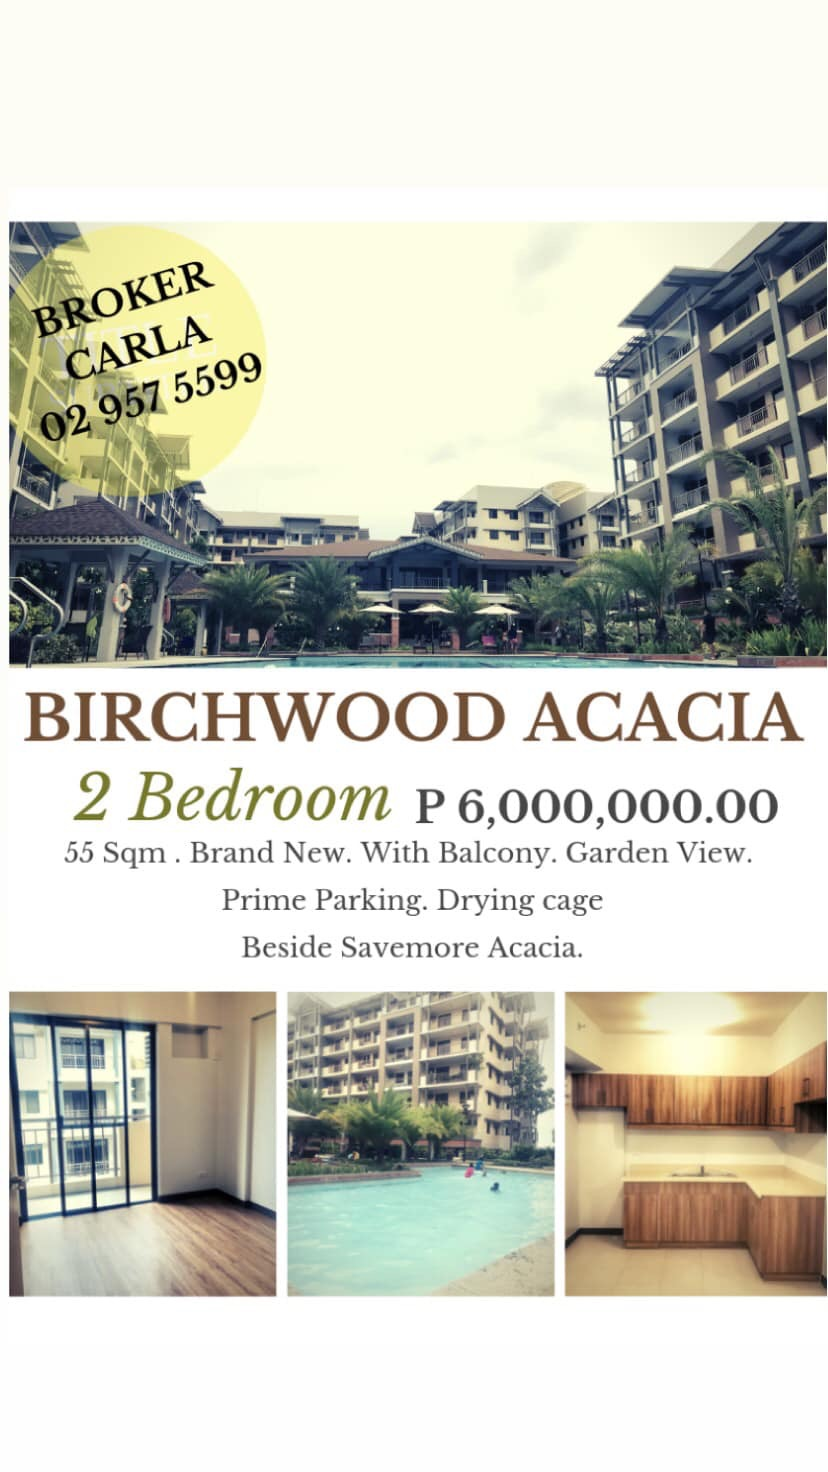 2 Bedroom Birchwood Acacia for Sale